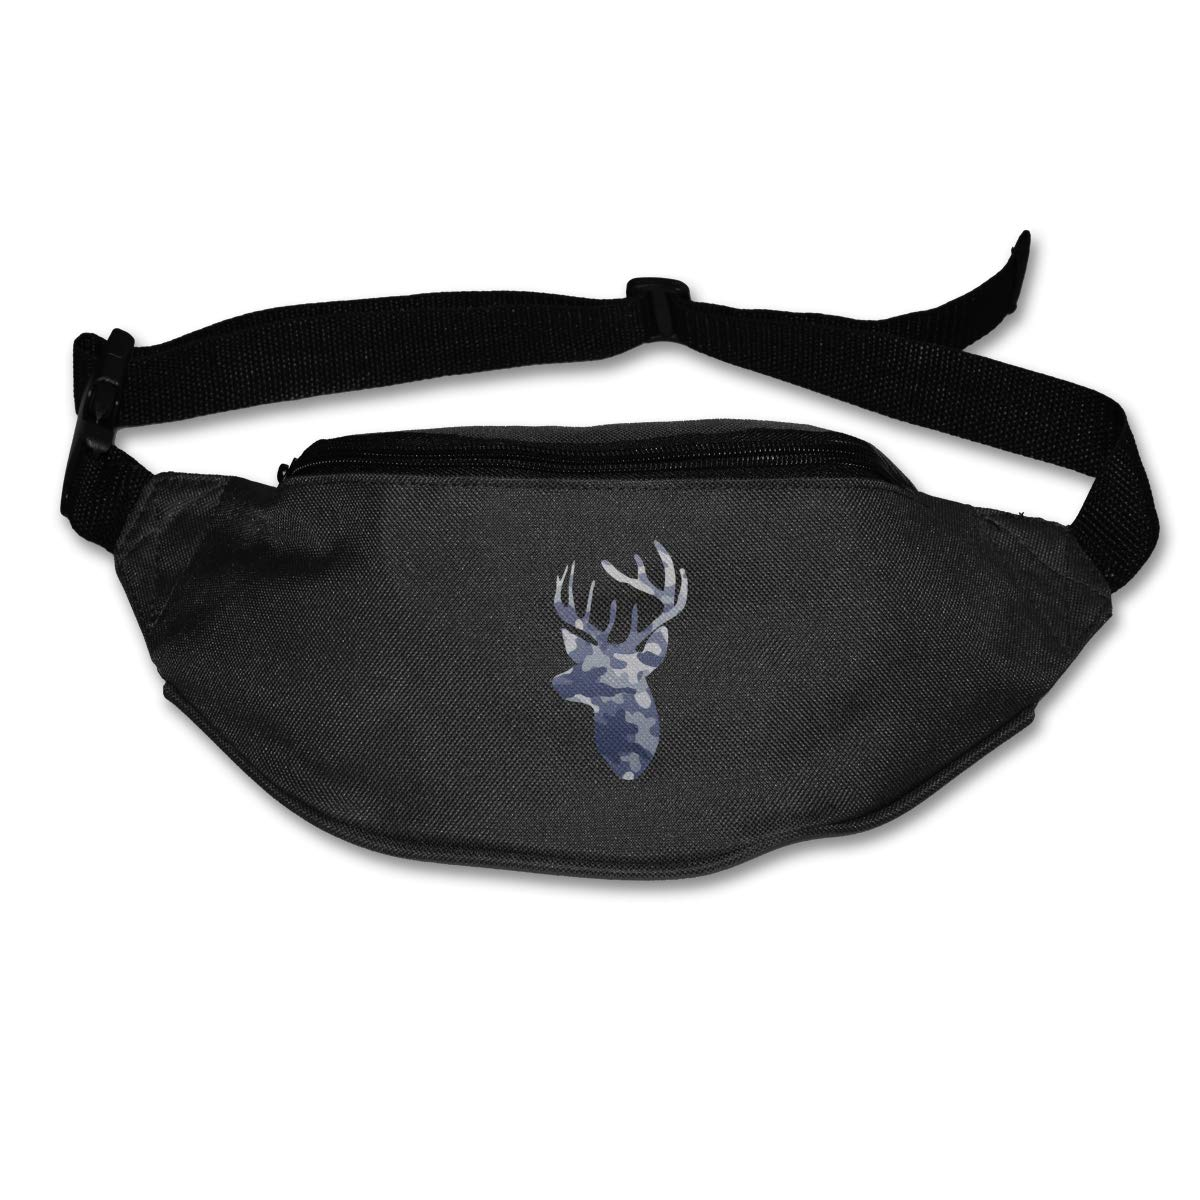 Deer Camo Sport Waist Packs Fanny Pack Adjustable For Run